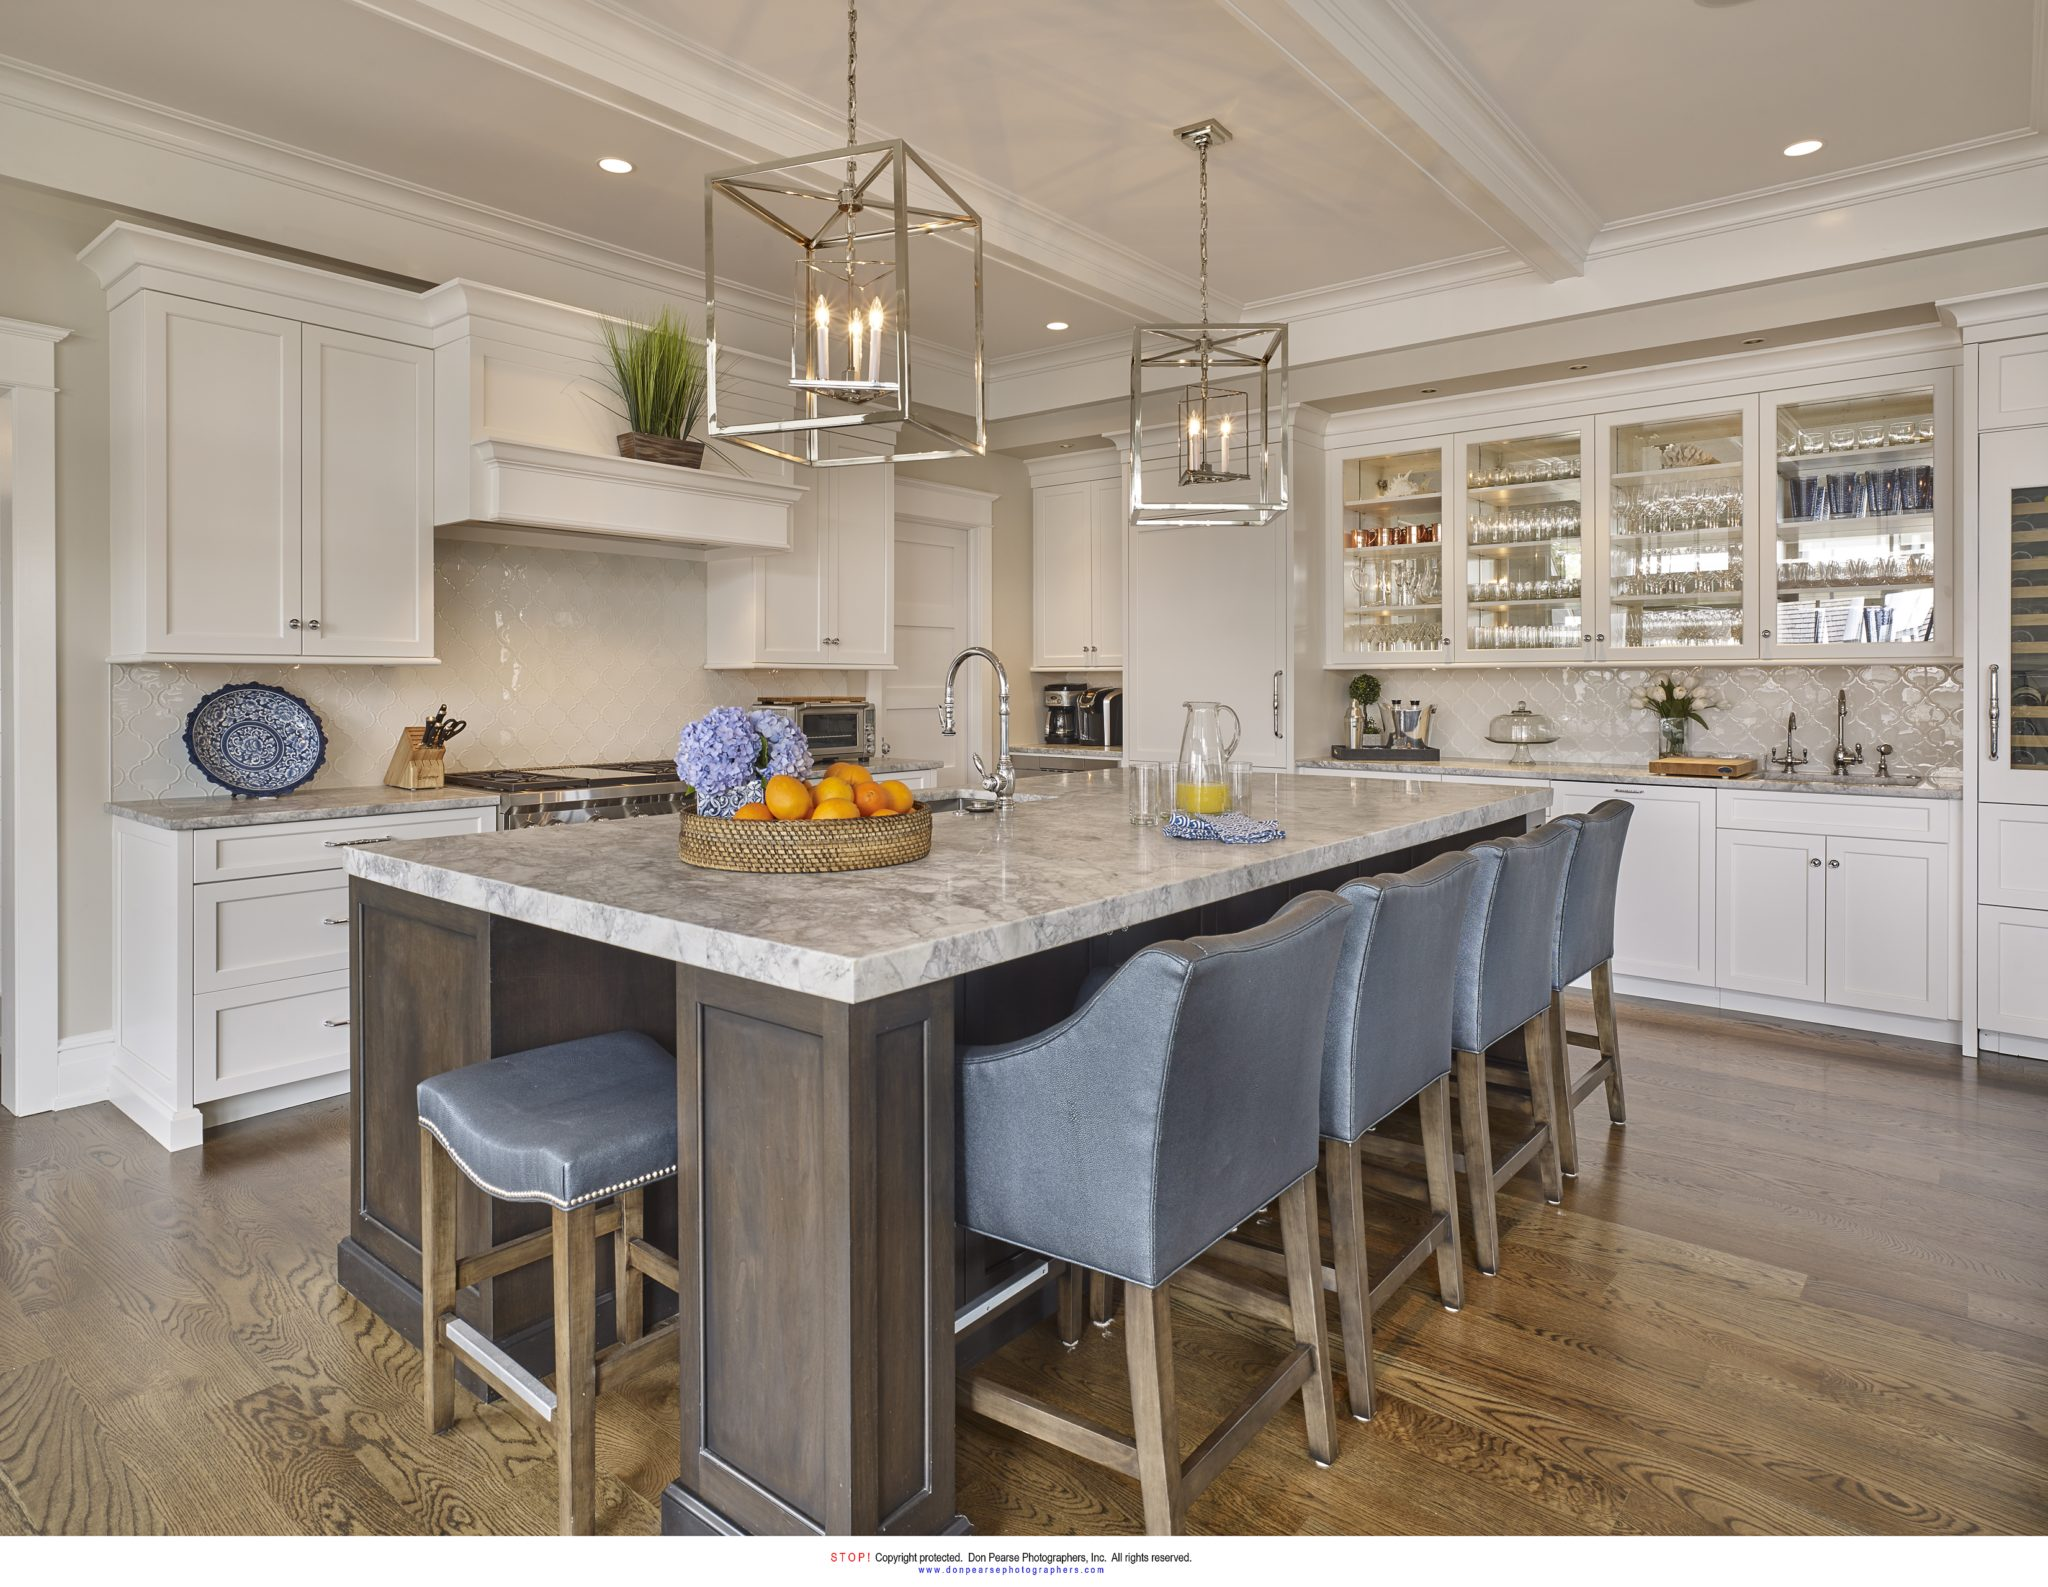 Avalon, New Jersey, kitchen island by Megan Gorelick Interiors